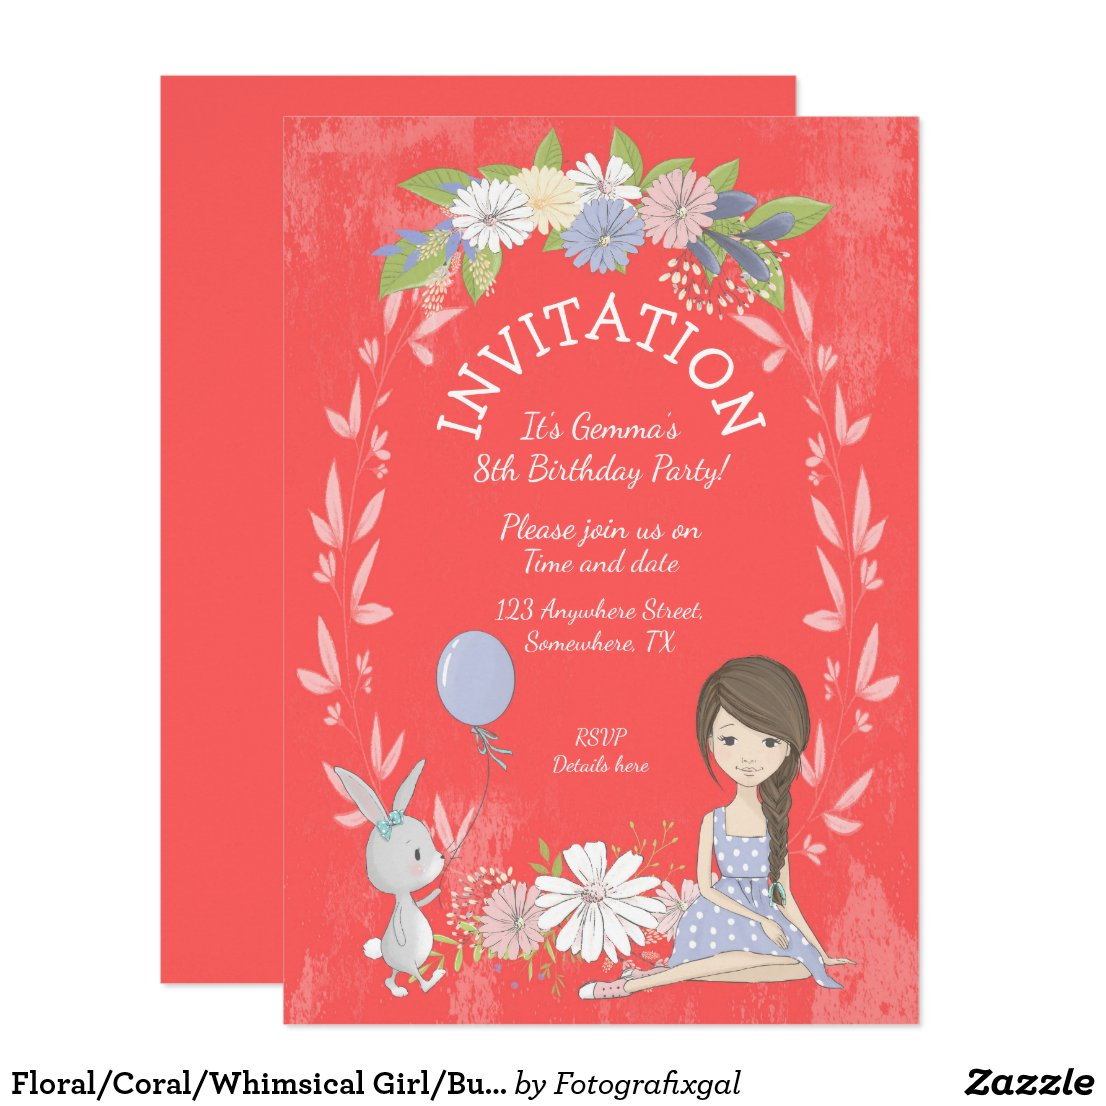 Floral/Coral/Whimsical Girl/Bunny/Birthday Party Invitation